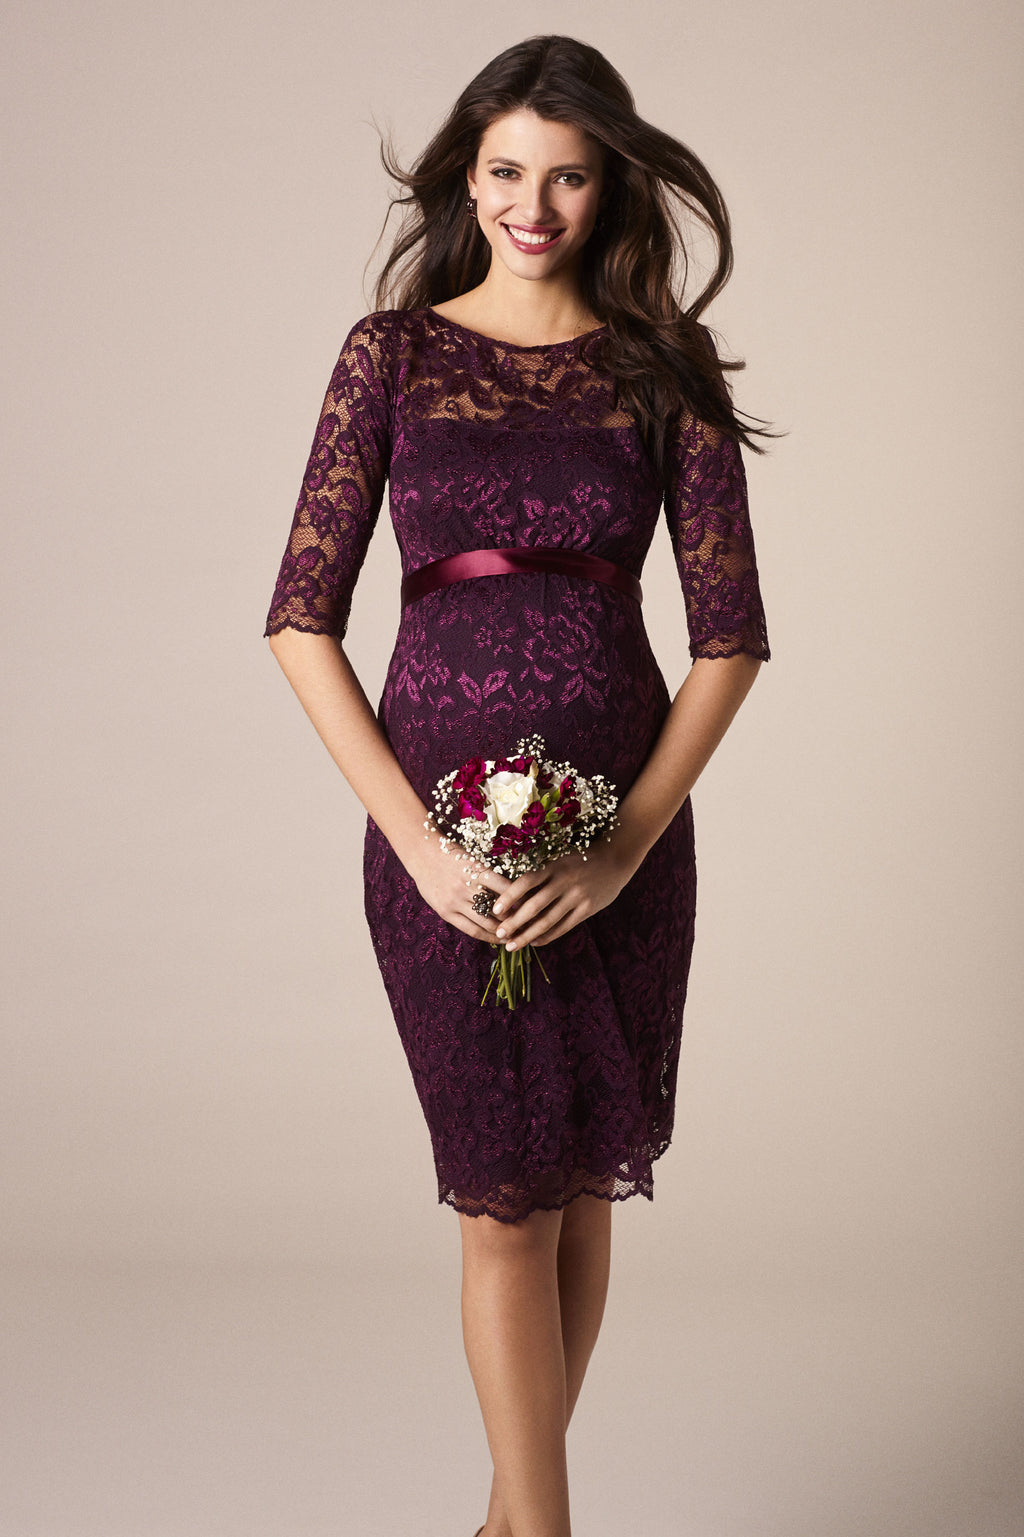 Tiffany Rose Amelia Maternity Lace Dress in Claret